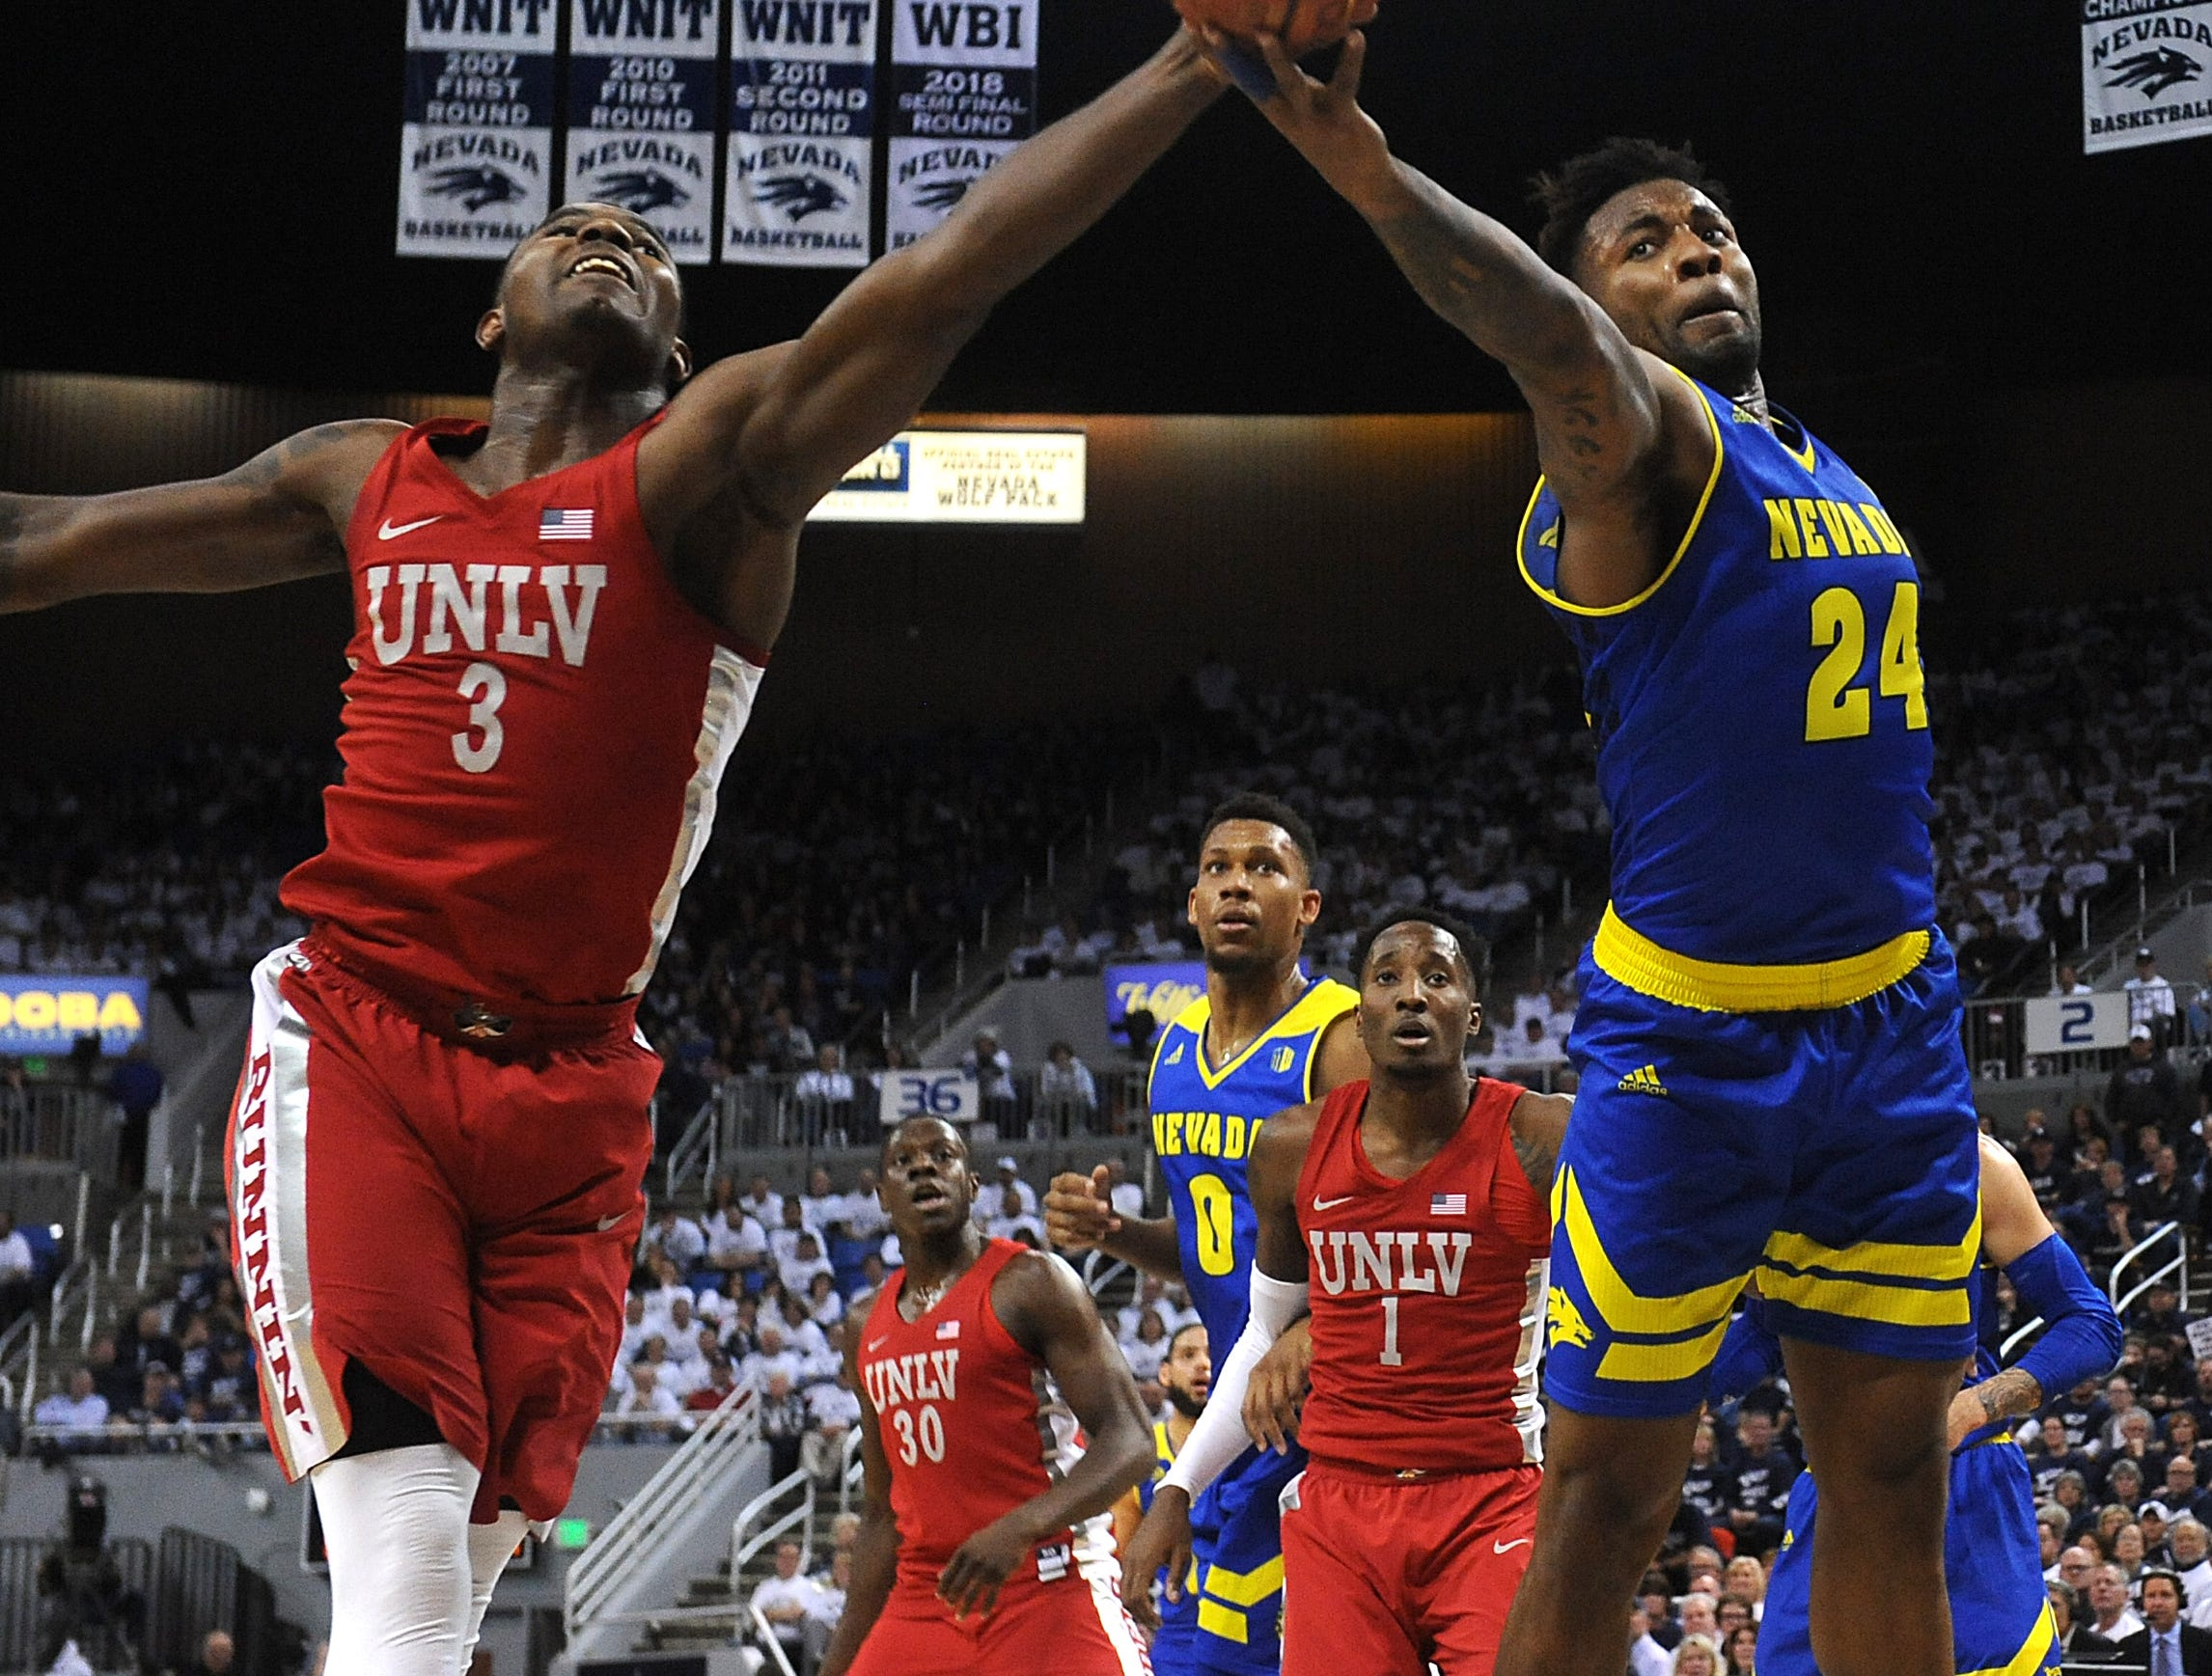 Nevada's Jordan Caroline (24) fights for a loose ball with UNLV's Amauri Hardy during their basketball game at Lawlor Events Center in Reno on Feb. 27, 2019.